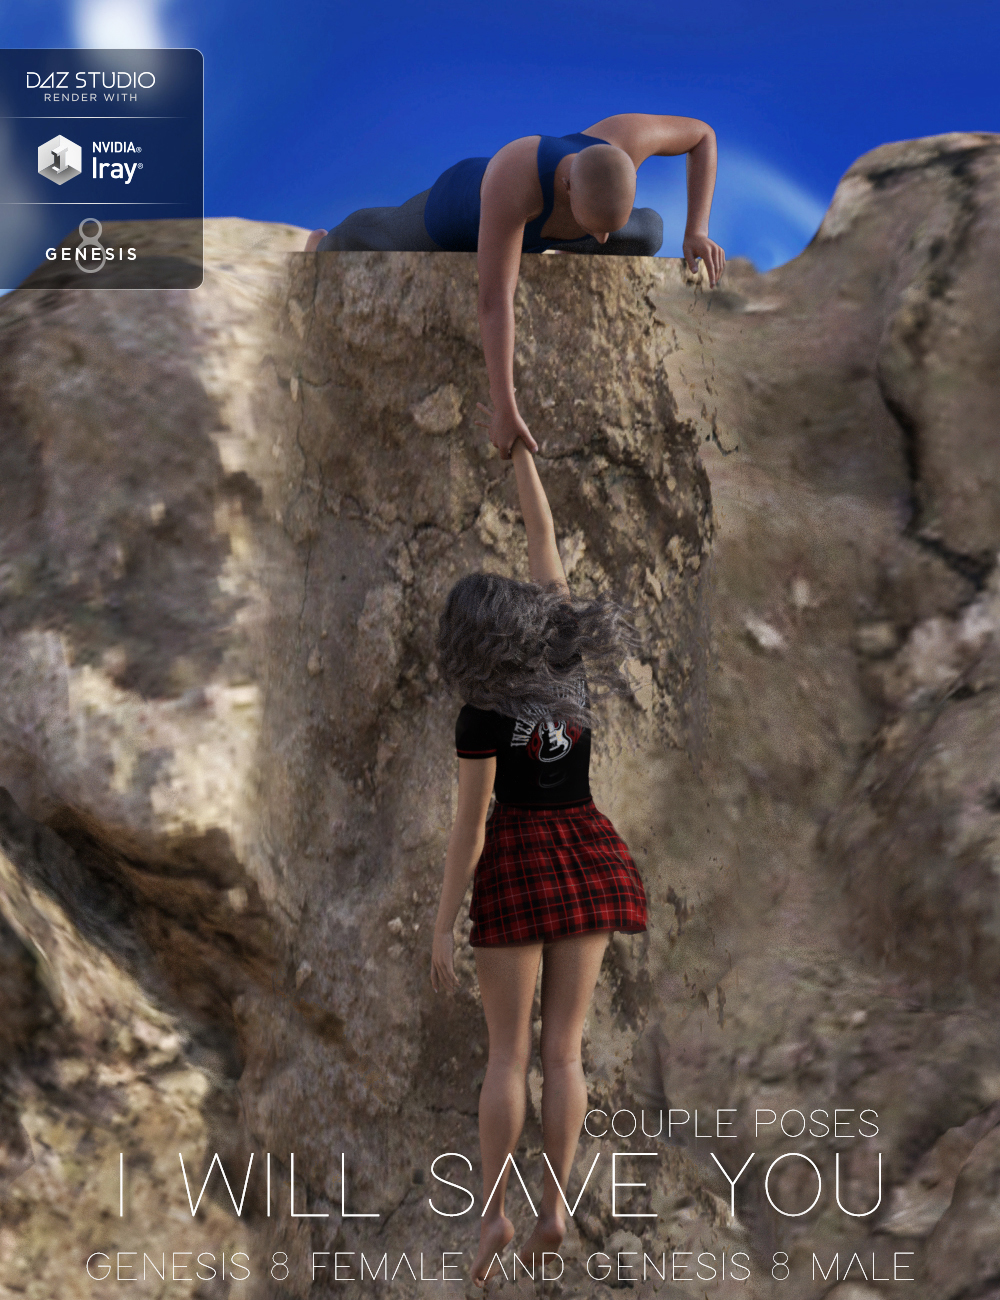 I Will Save You Poses for Genesis 8 Female(s) and Male(s) by: Muscleman, 3D Models by Daz 3D